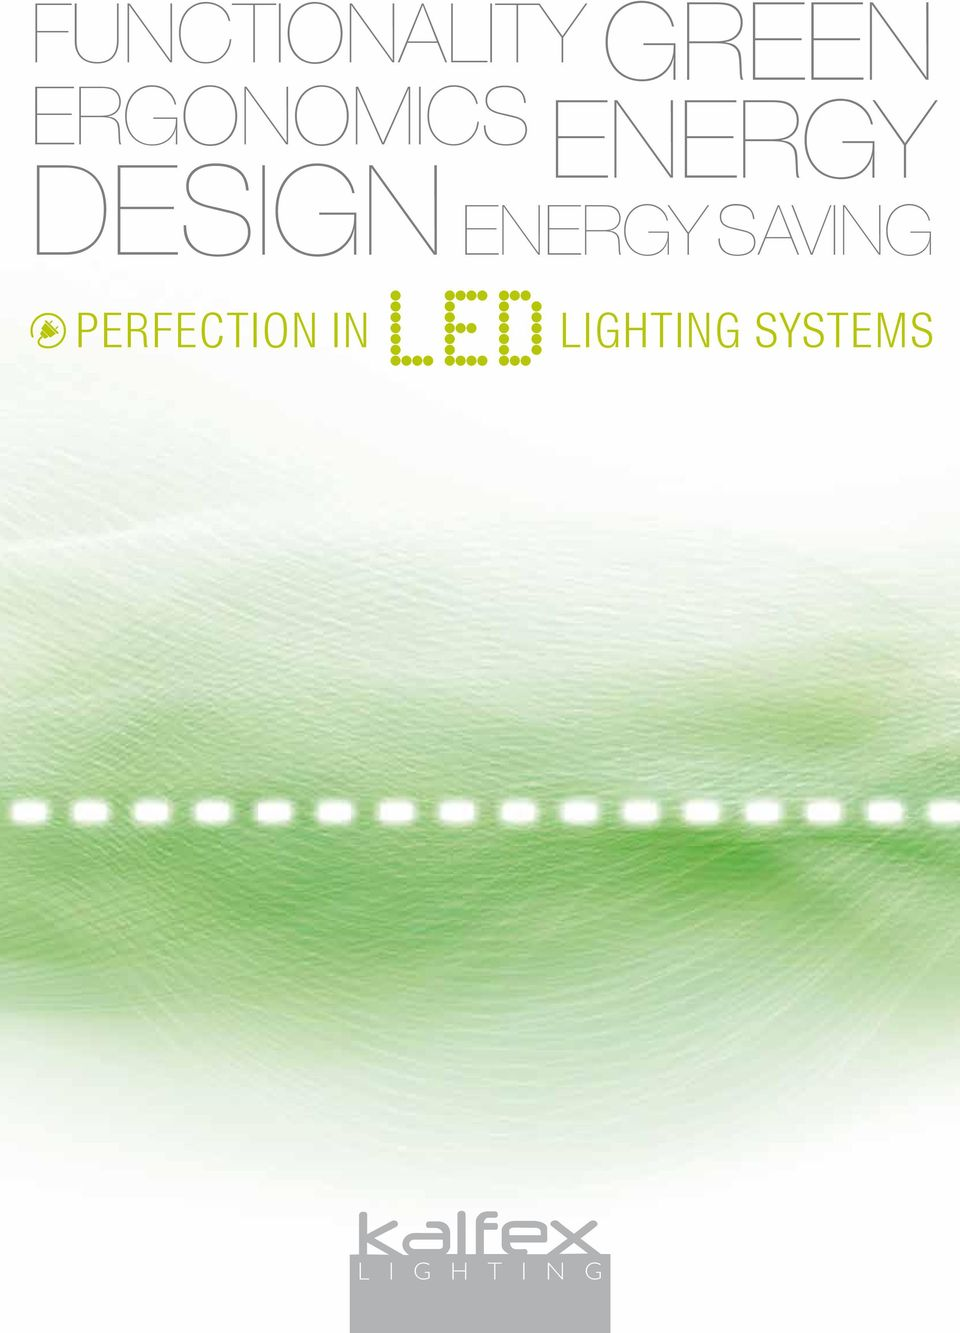 IN GREEN ENERGY DESIGN